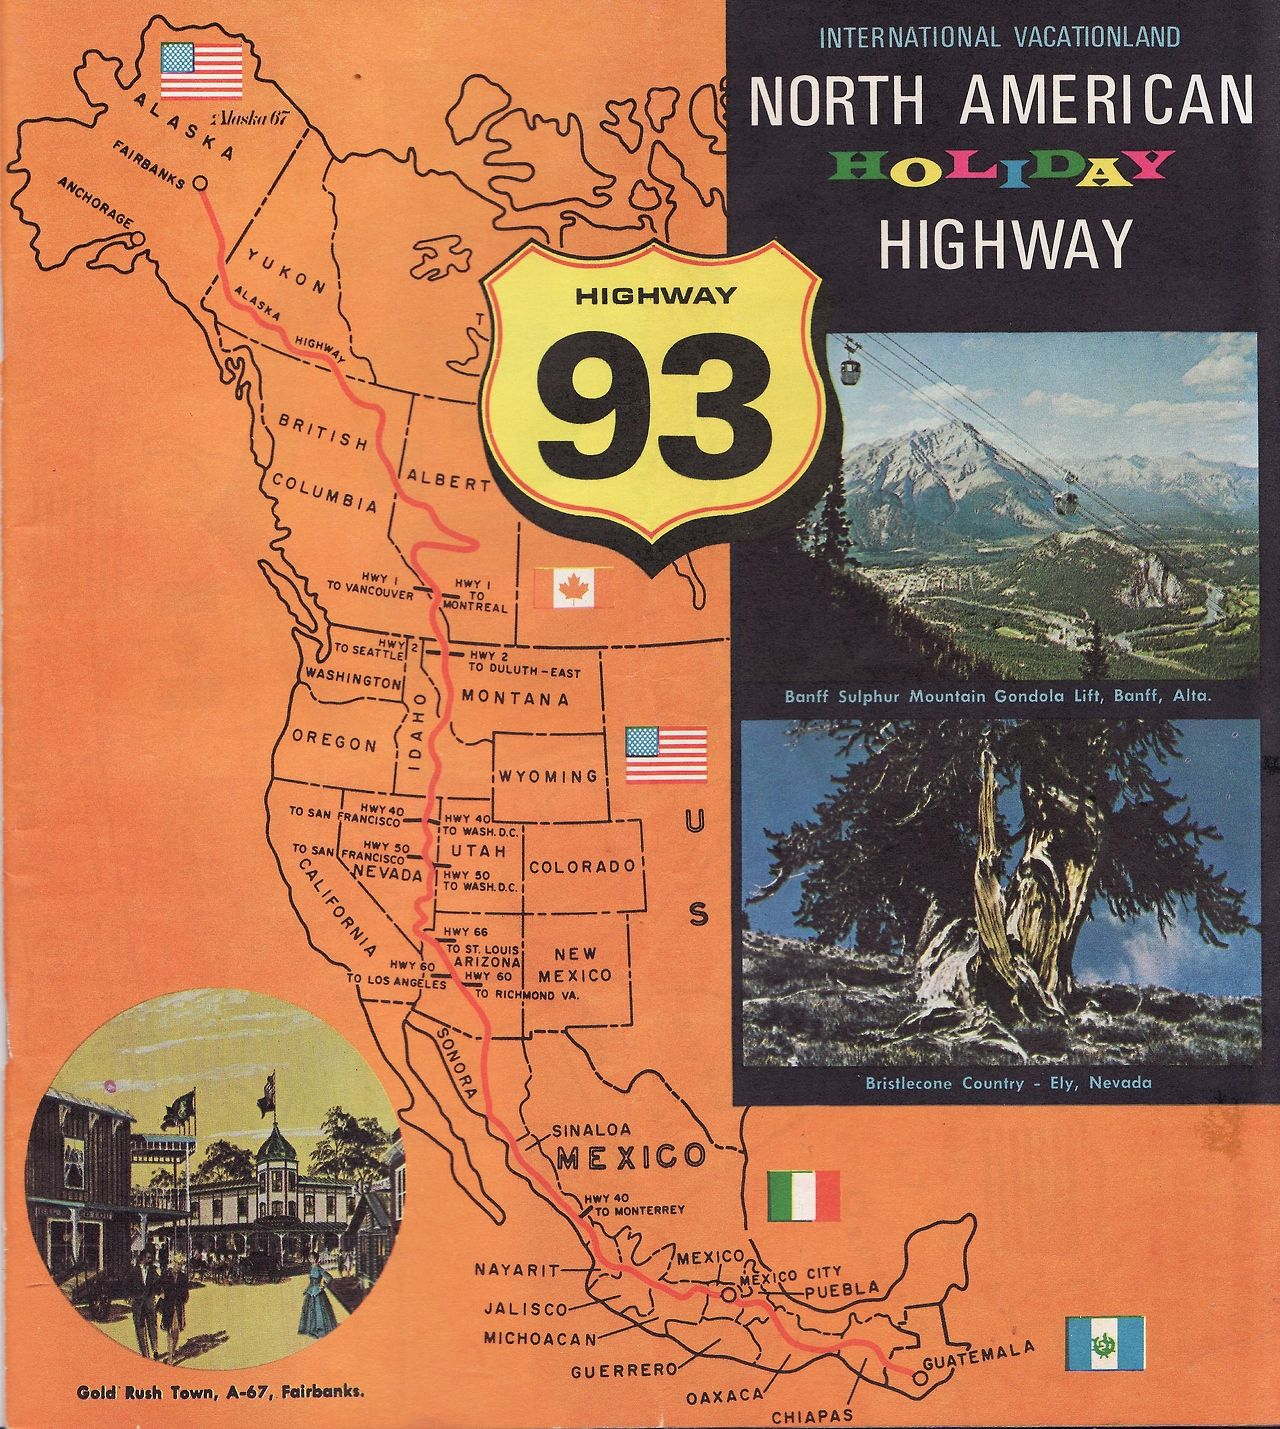 el rancho not so grande highway 93 map booklet vintage notes on the sights